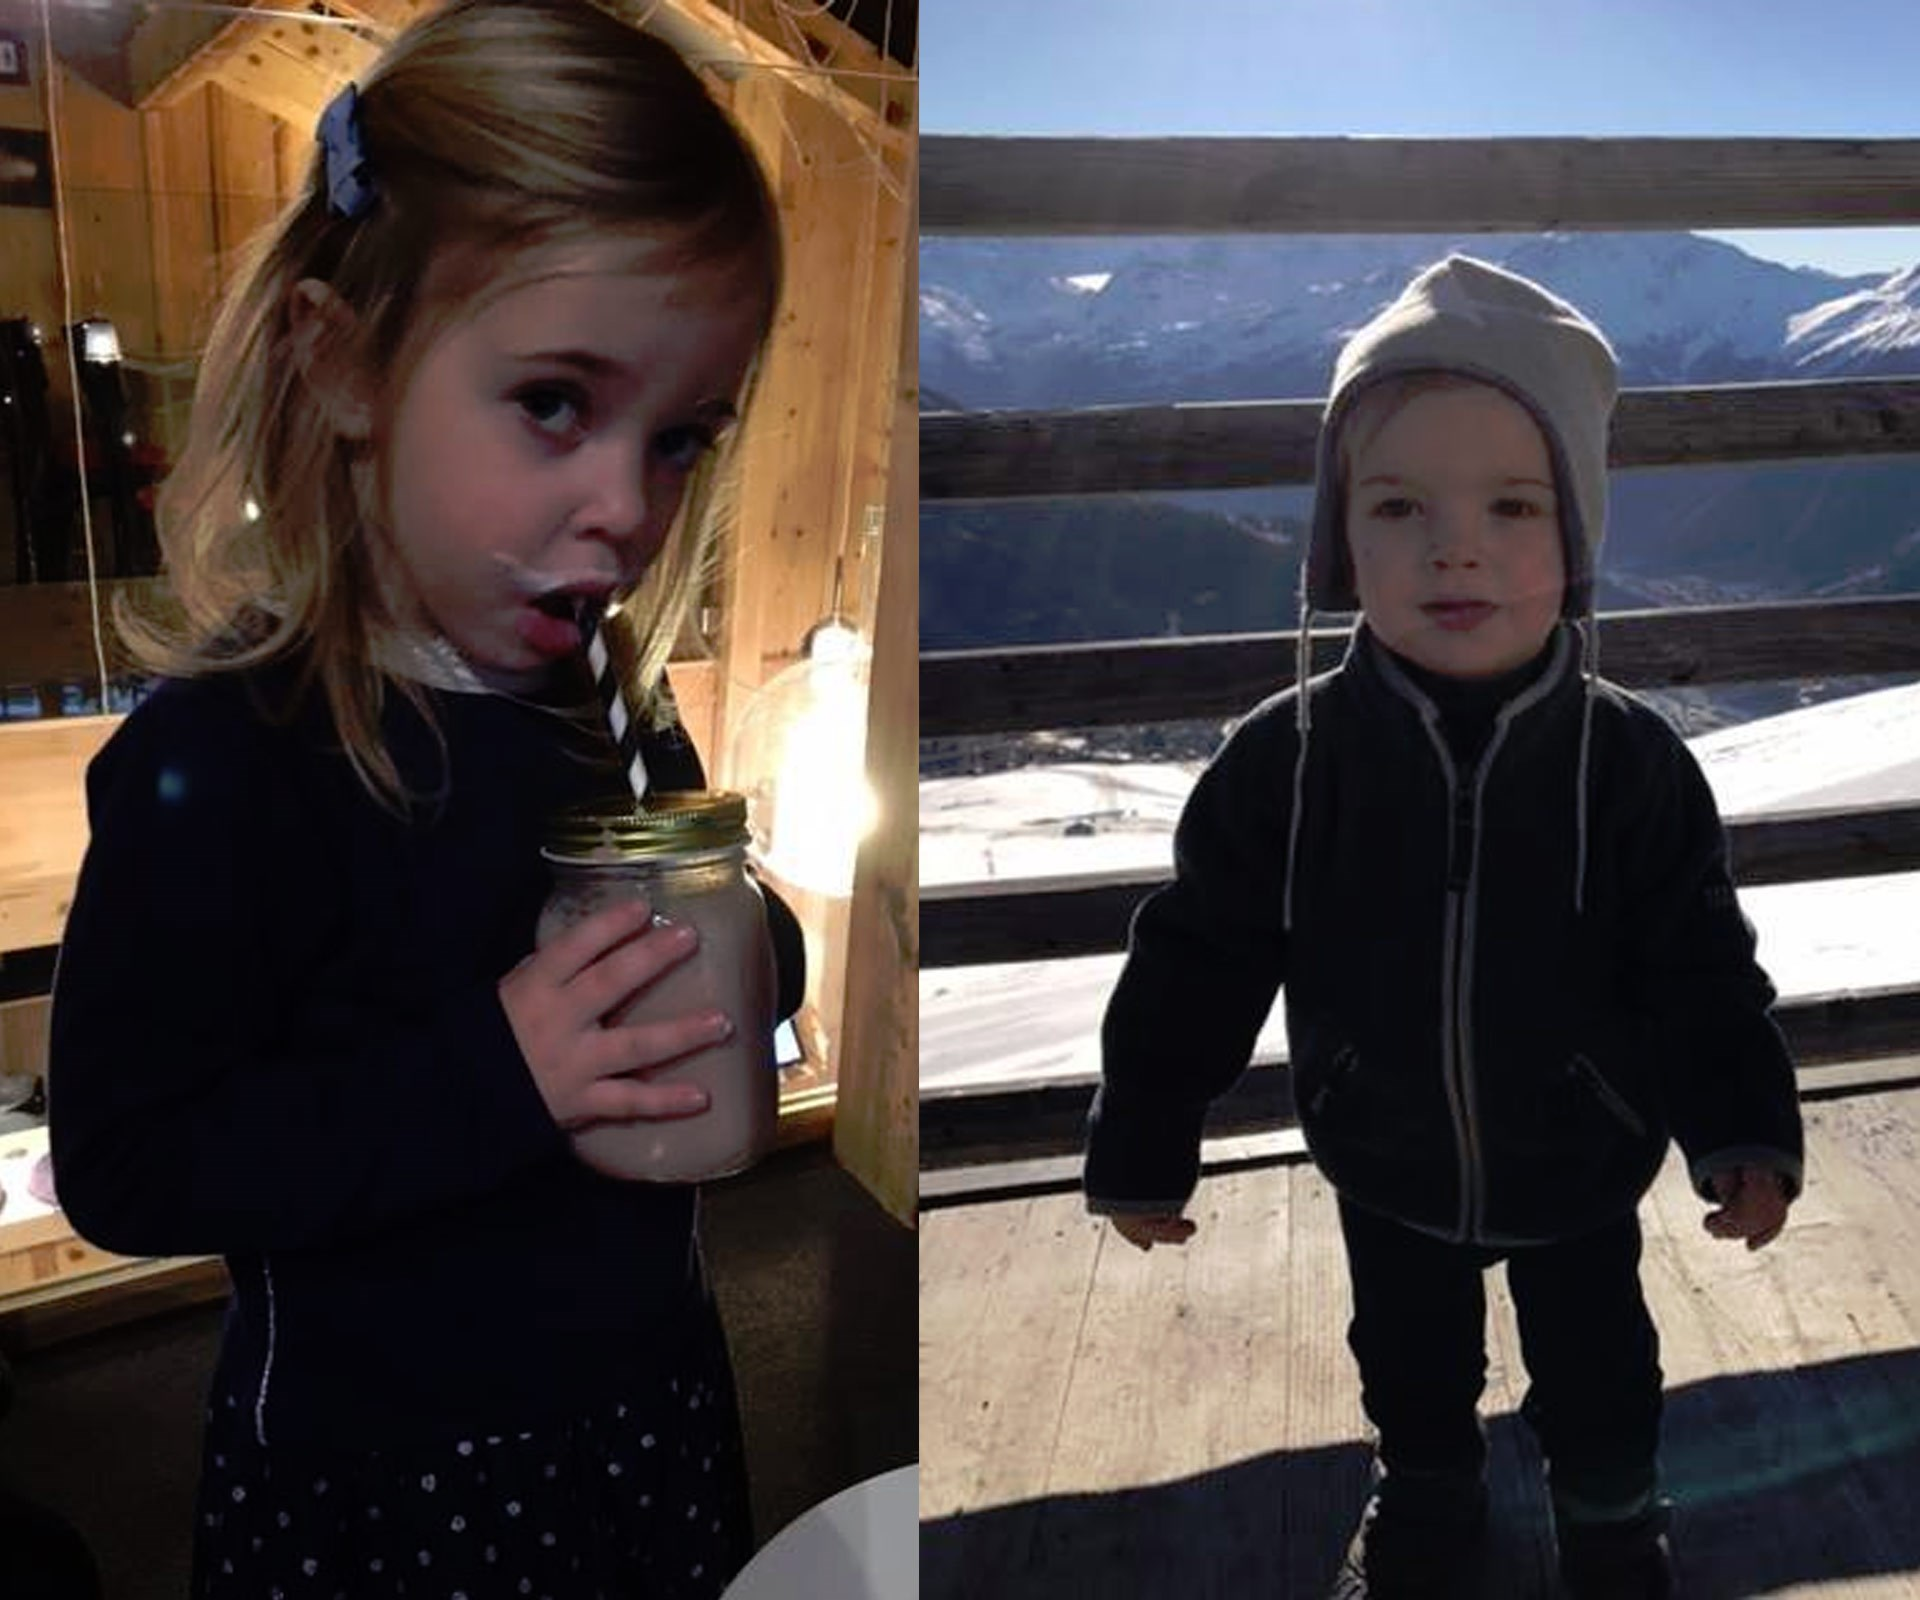 """""""A very Happy New Year to all of you from Leonore & Nicolas!"""" she penned alongside the photos on her Facebook page."""